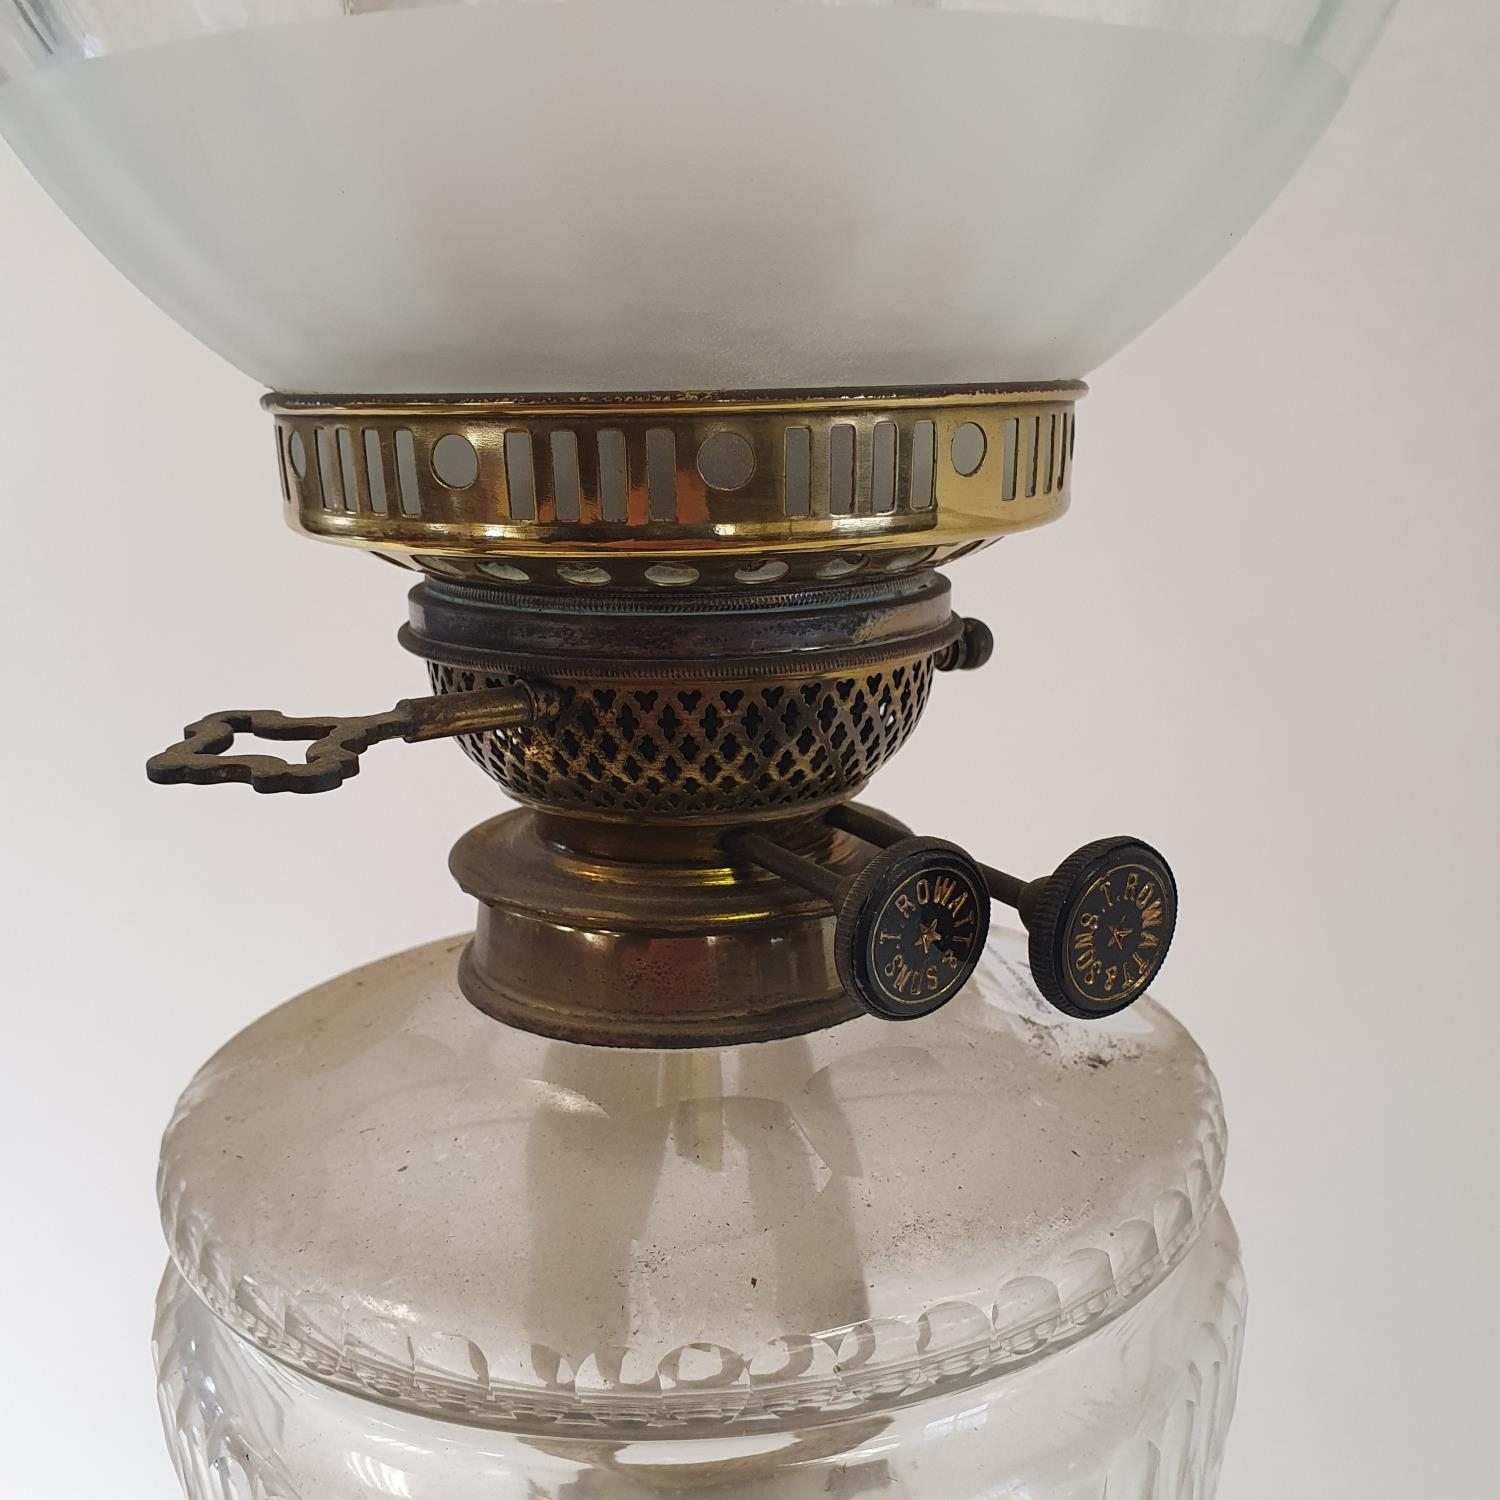 An oil lamp, with an acid etched glass shade, a clear glass well on a brass base in the form of a - Image 3 of 4